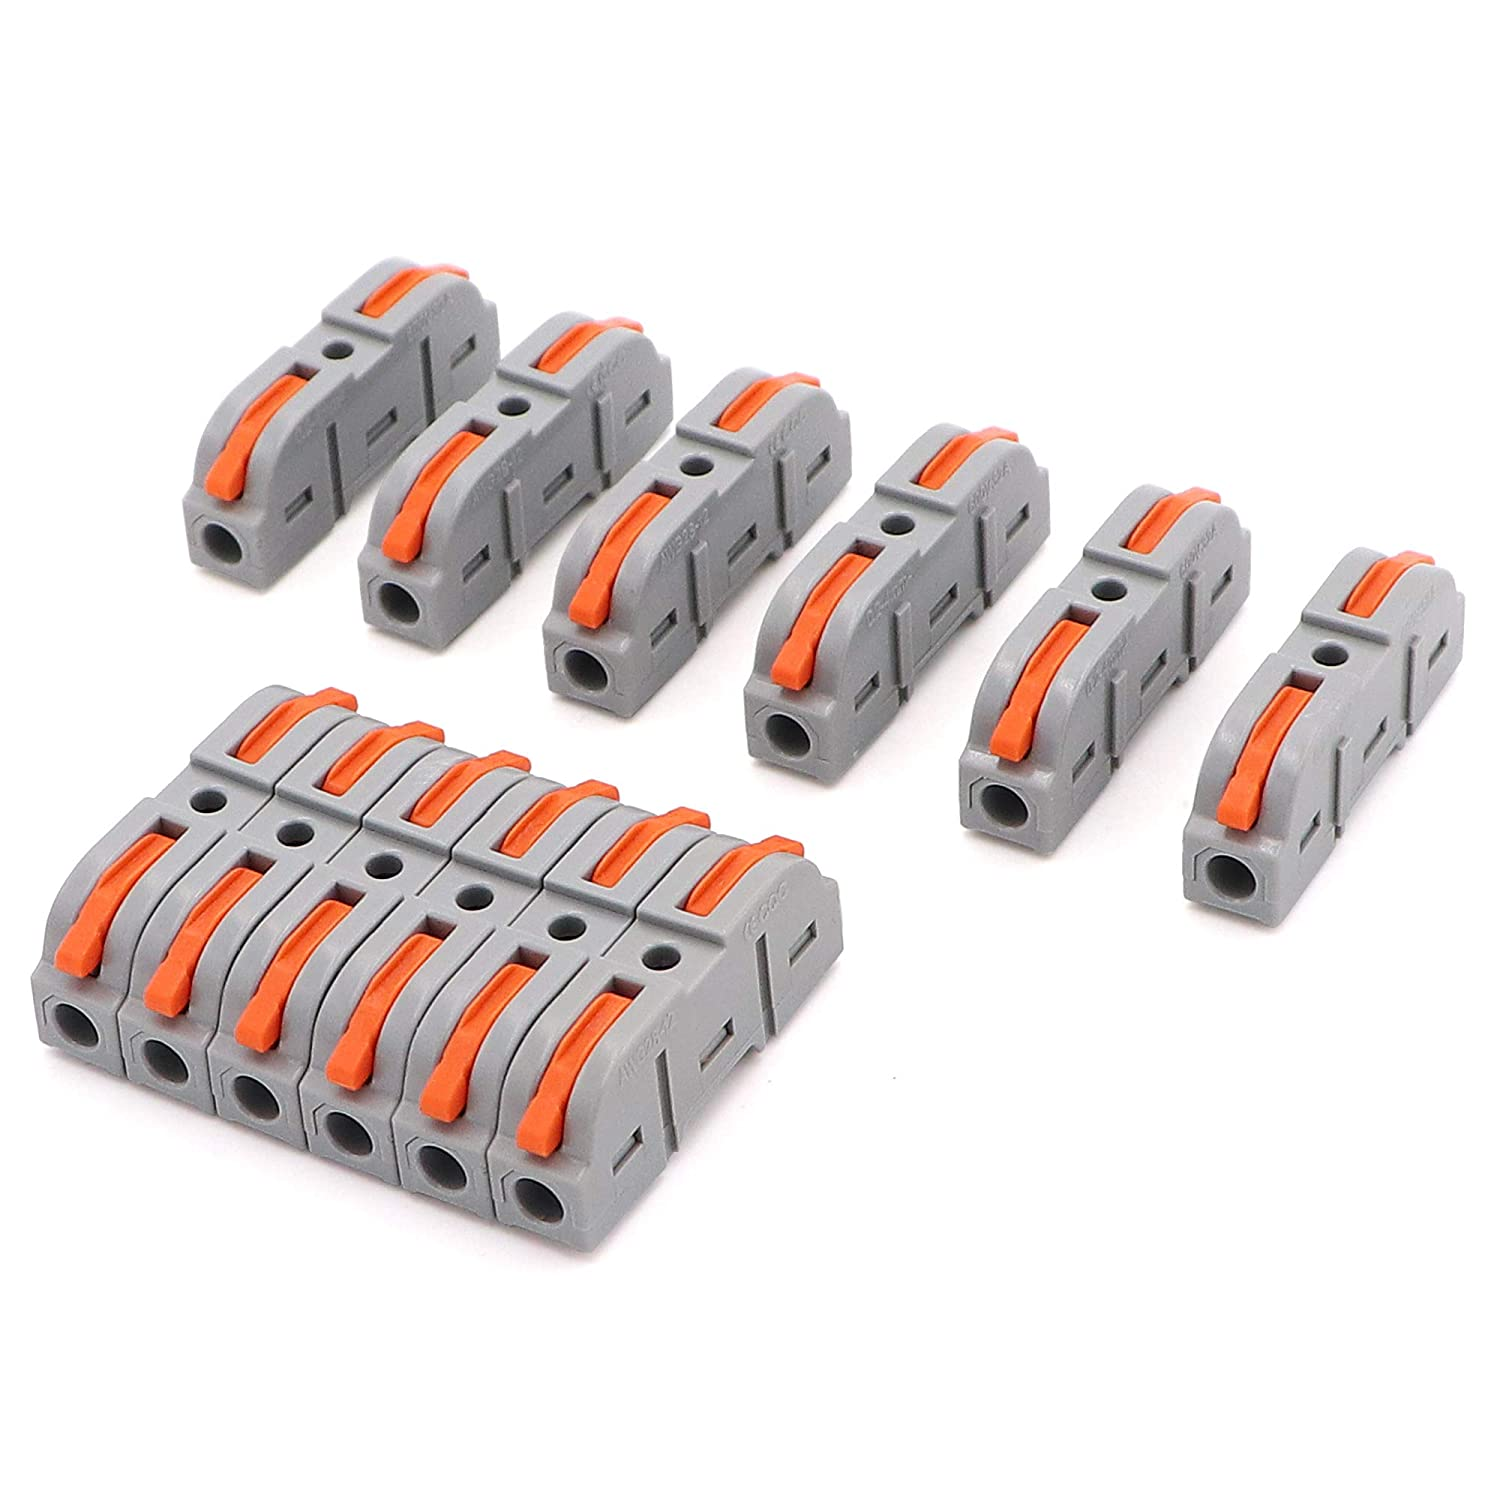 25pcs Wire Conductor Connectors - DIY Splicing into 2/3/4/5/6 Way Butt Cable Terminal for 28-12 AWG